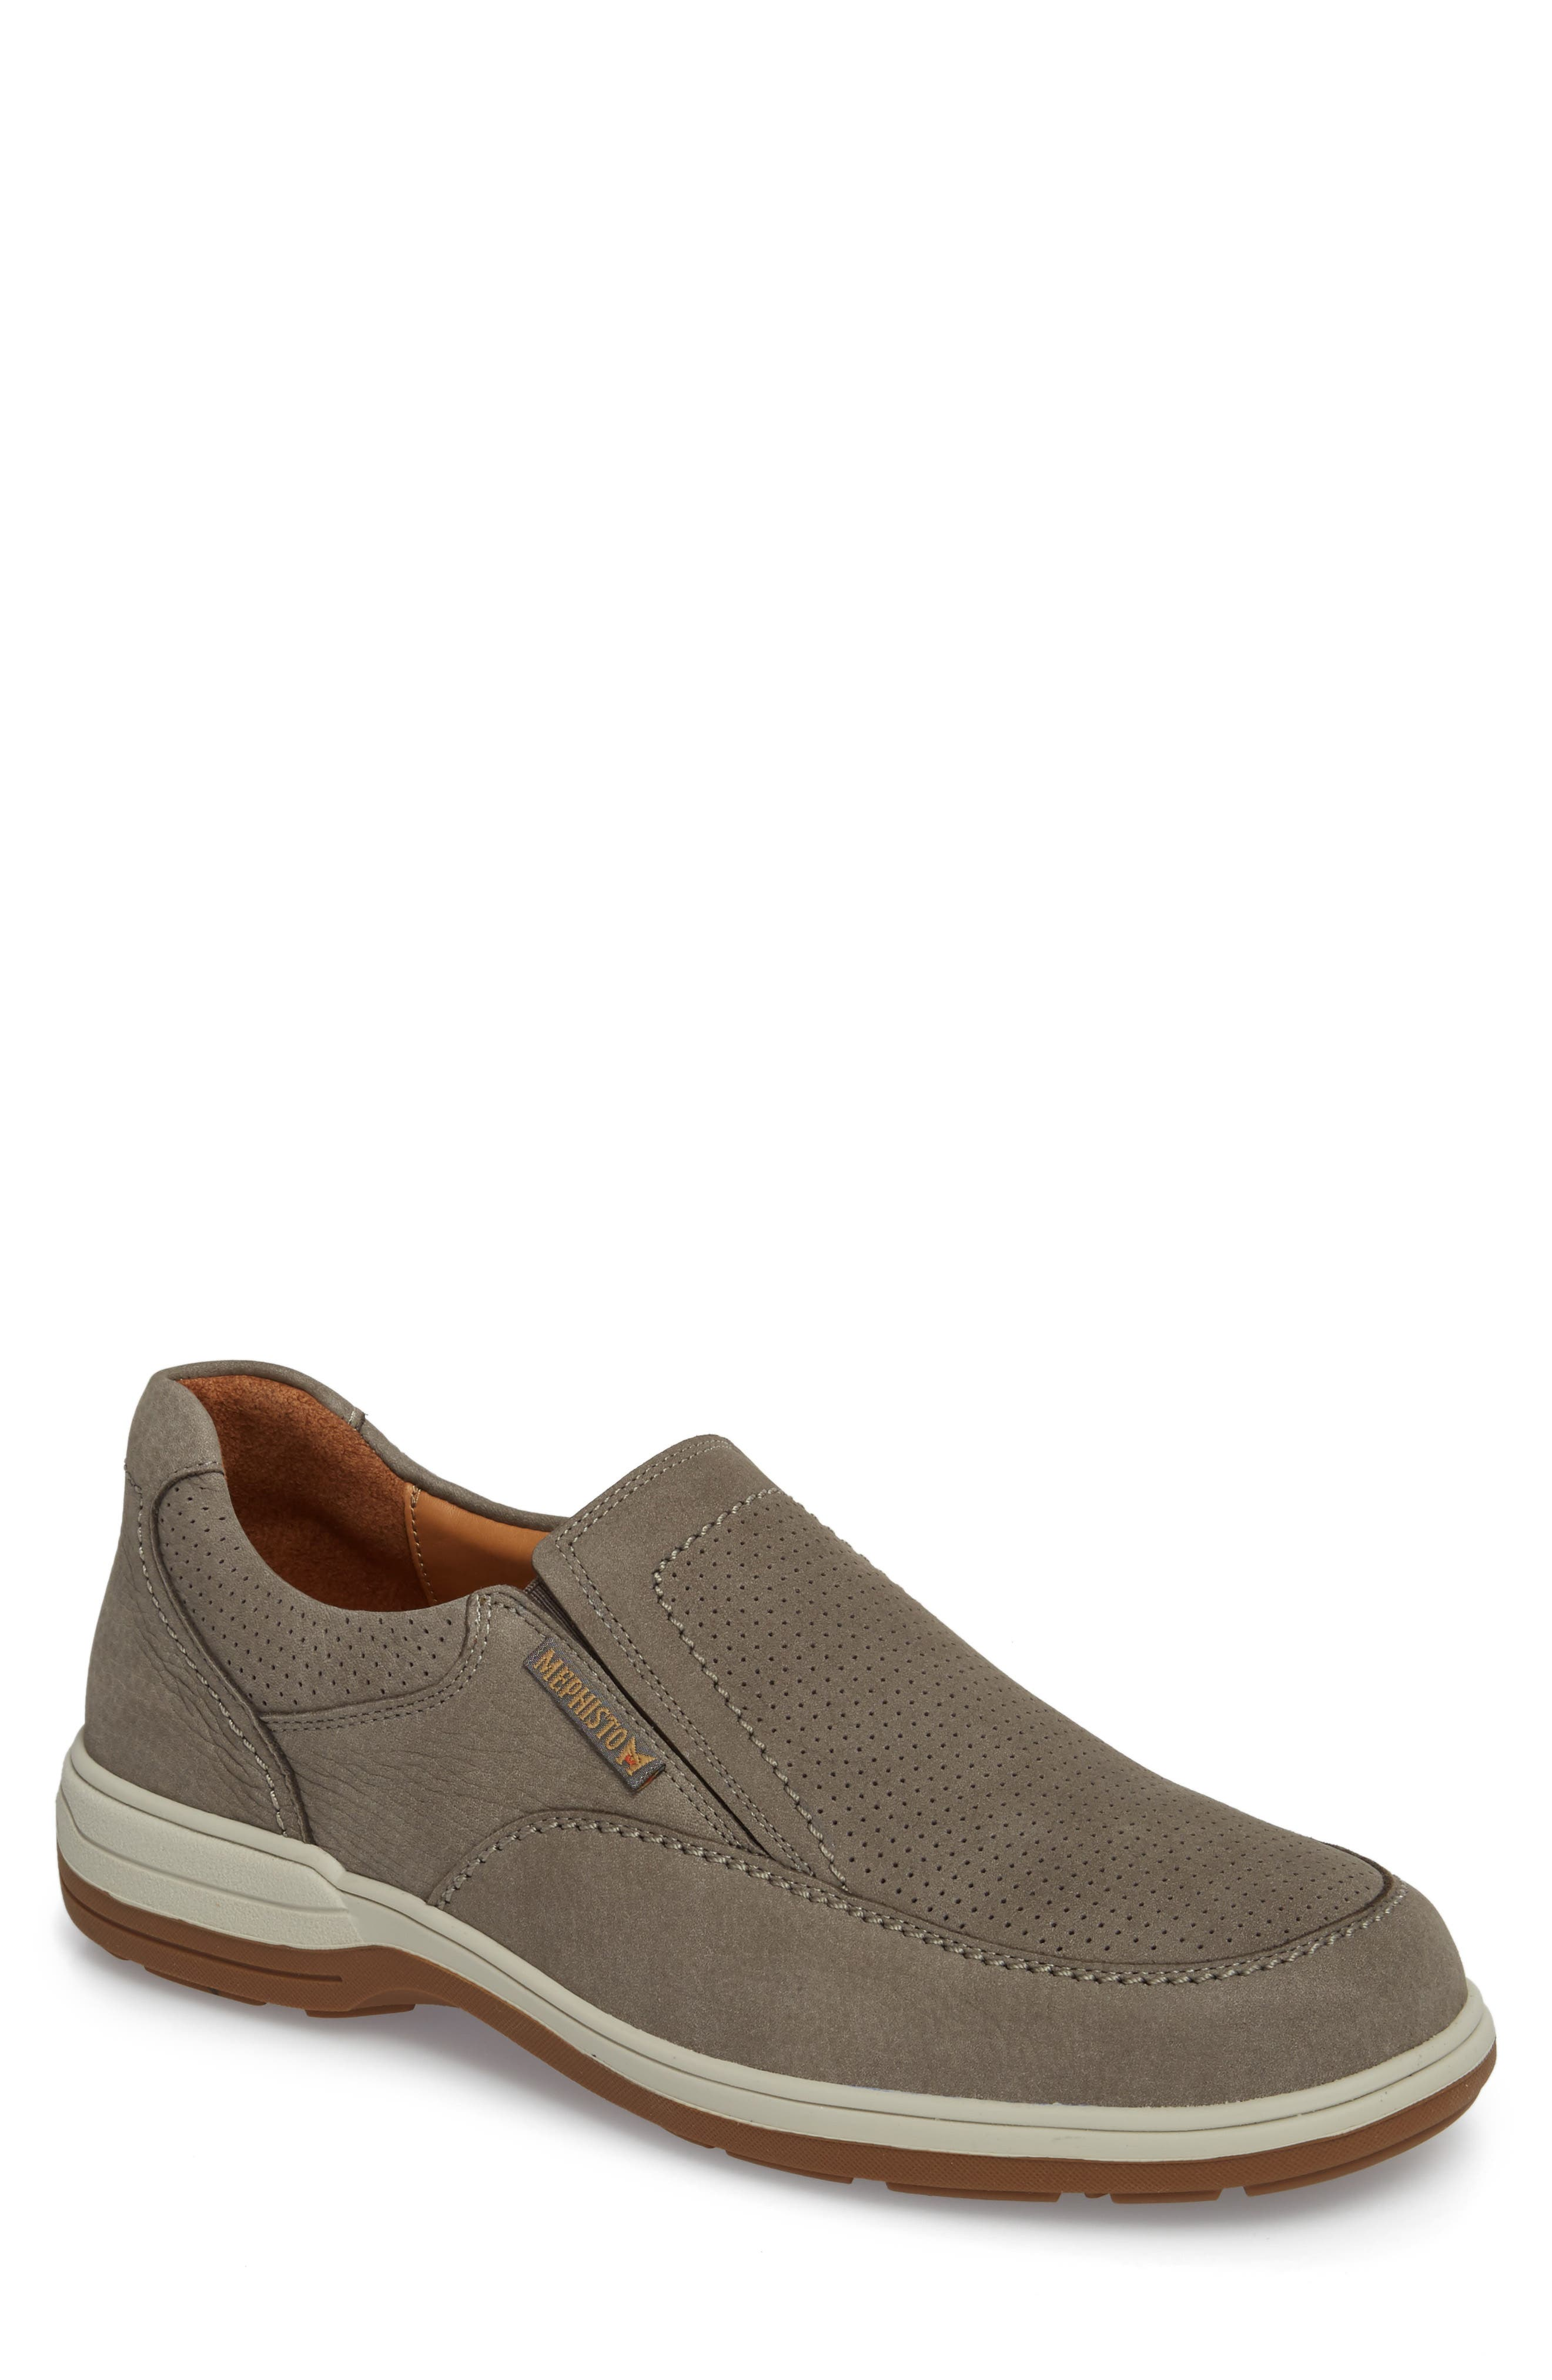 Davy Perforated Slip-On Sneaker,                         Main,                         color, 051